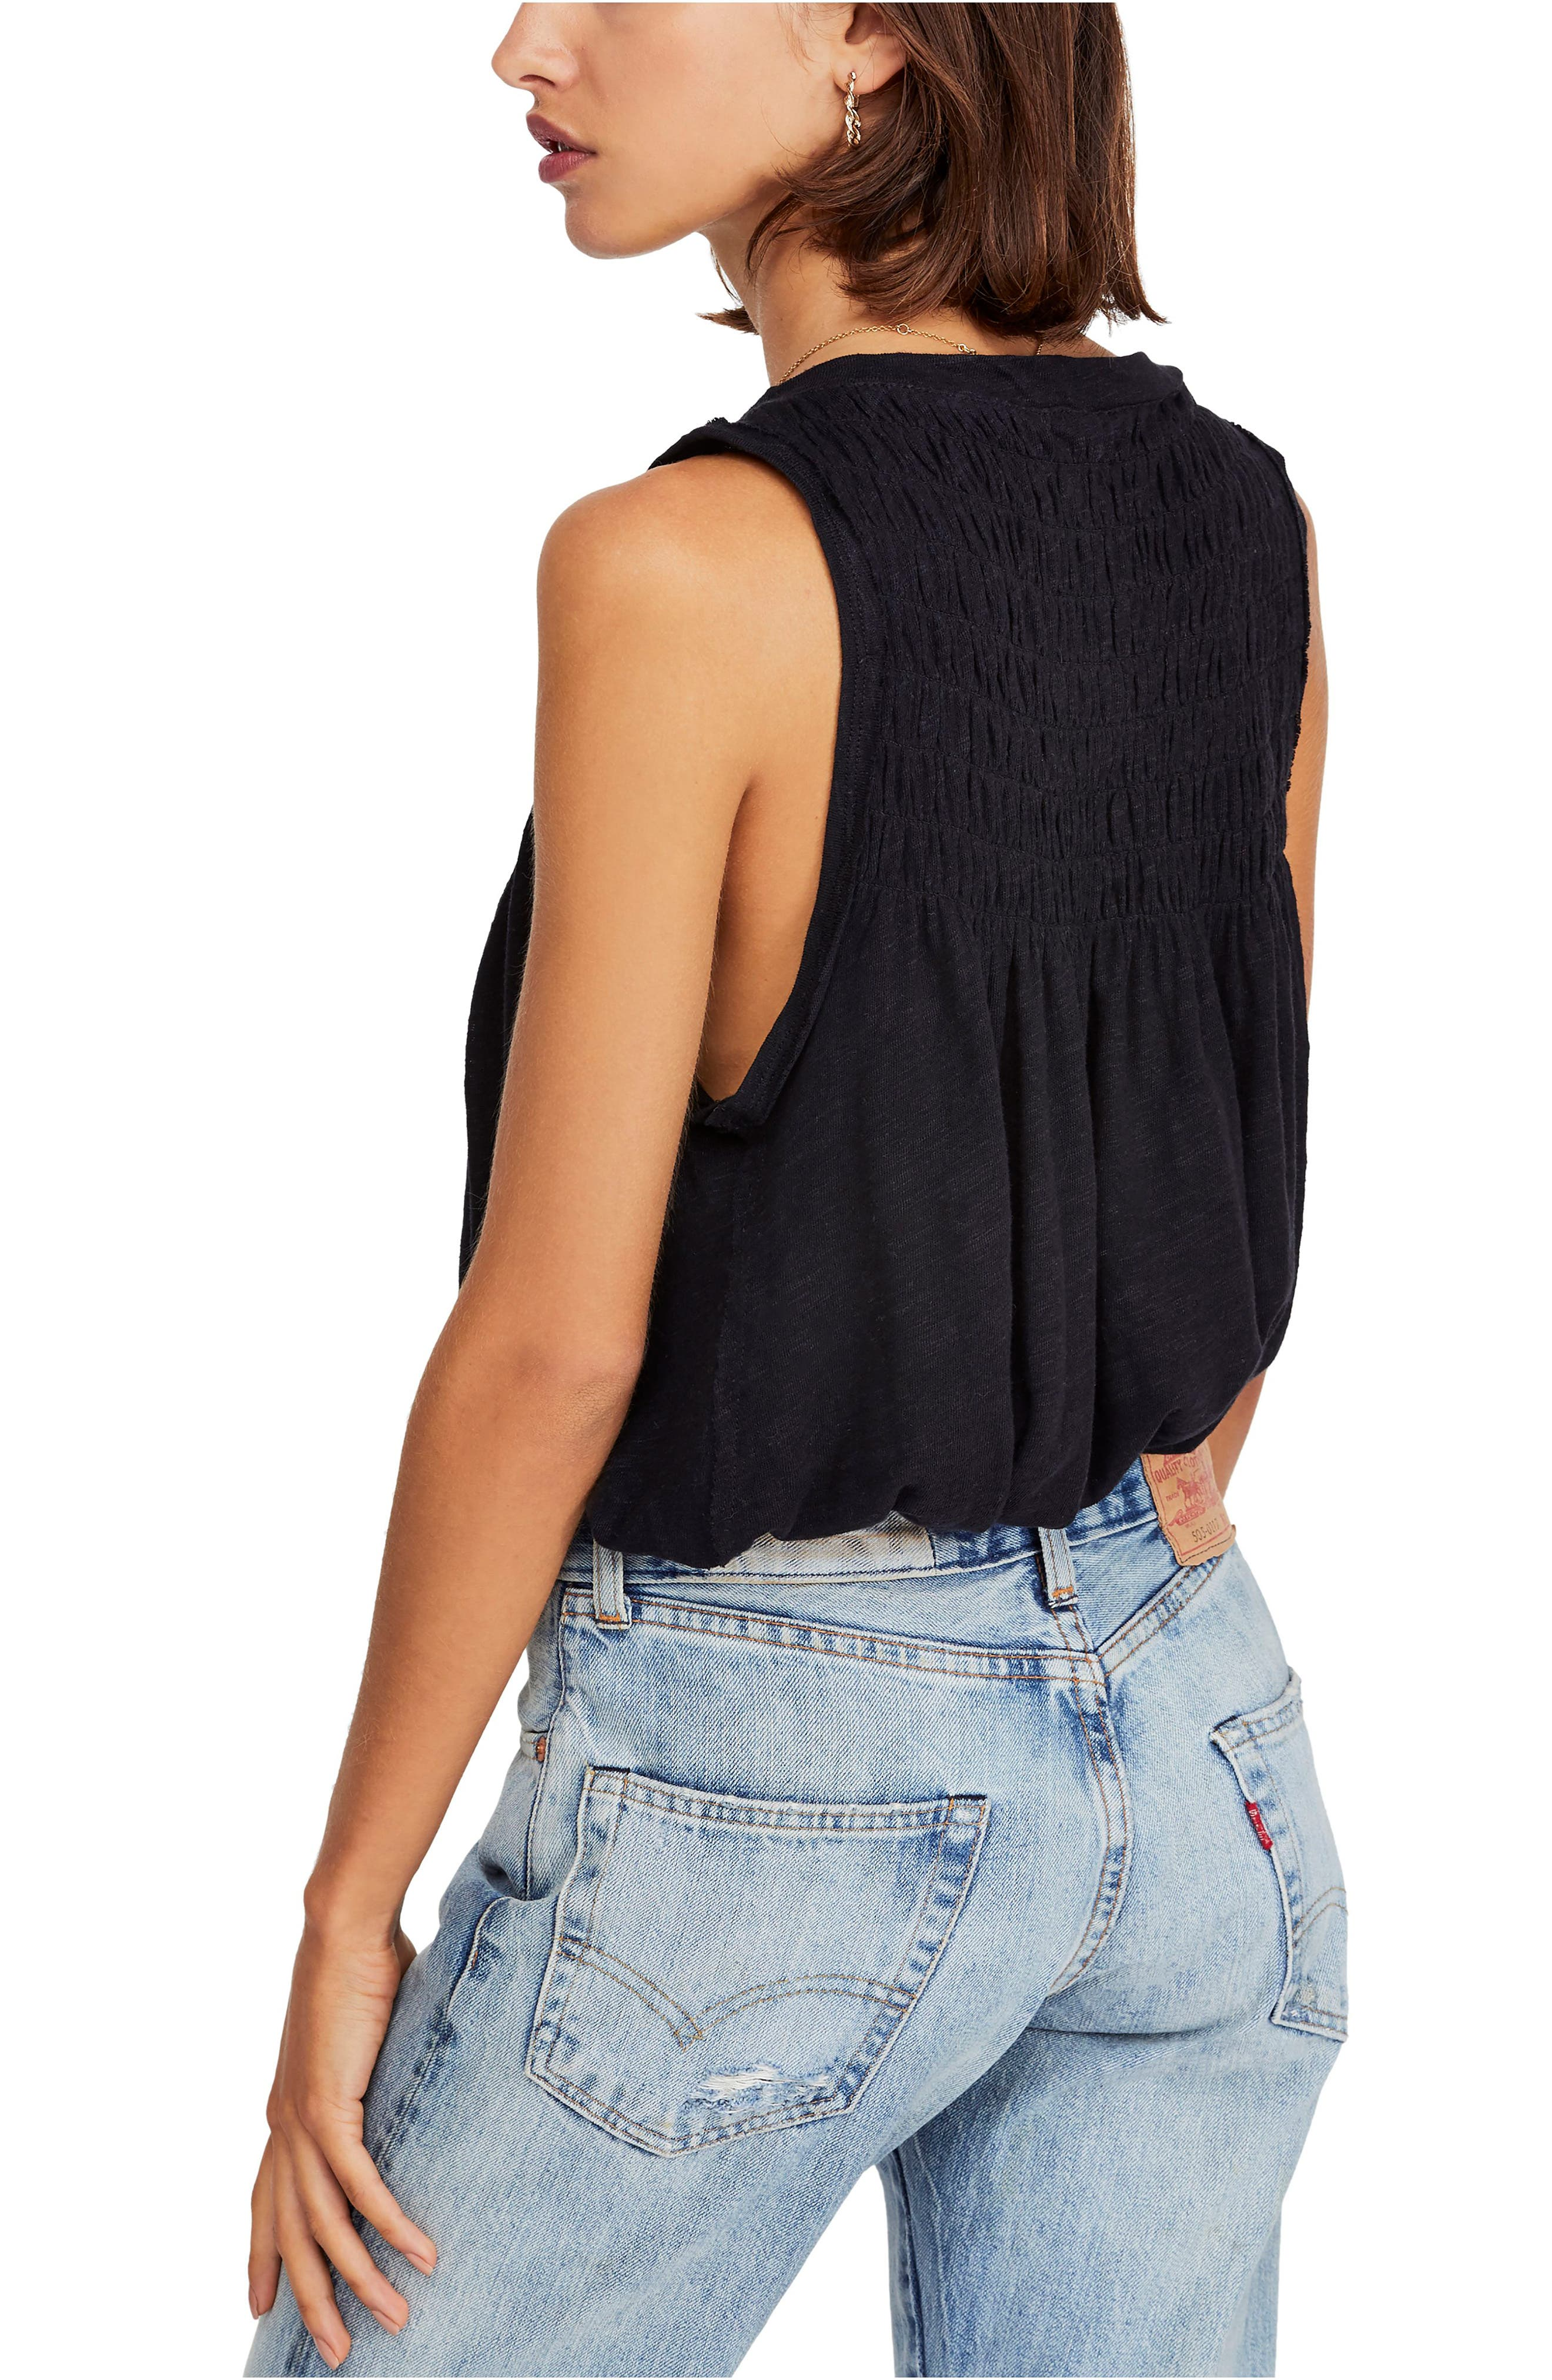 FREE PEOPLE, New to Town Tank, Alternate thumbnail 2, color, 001